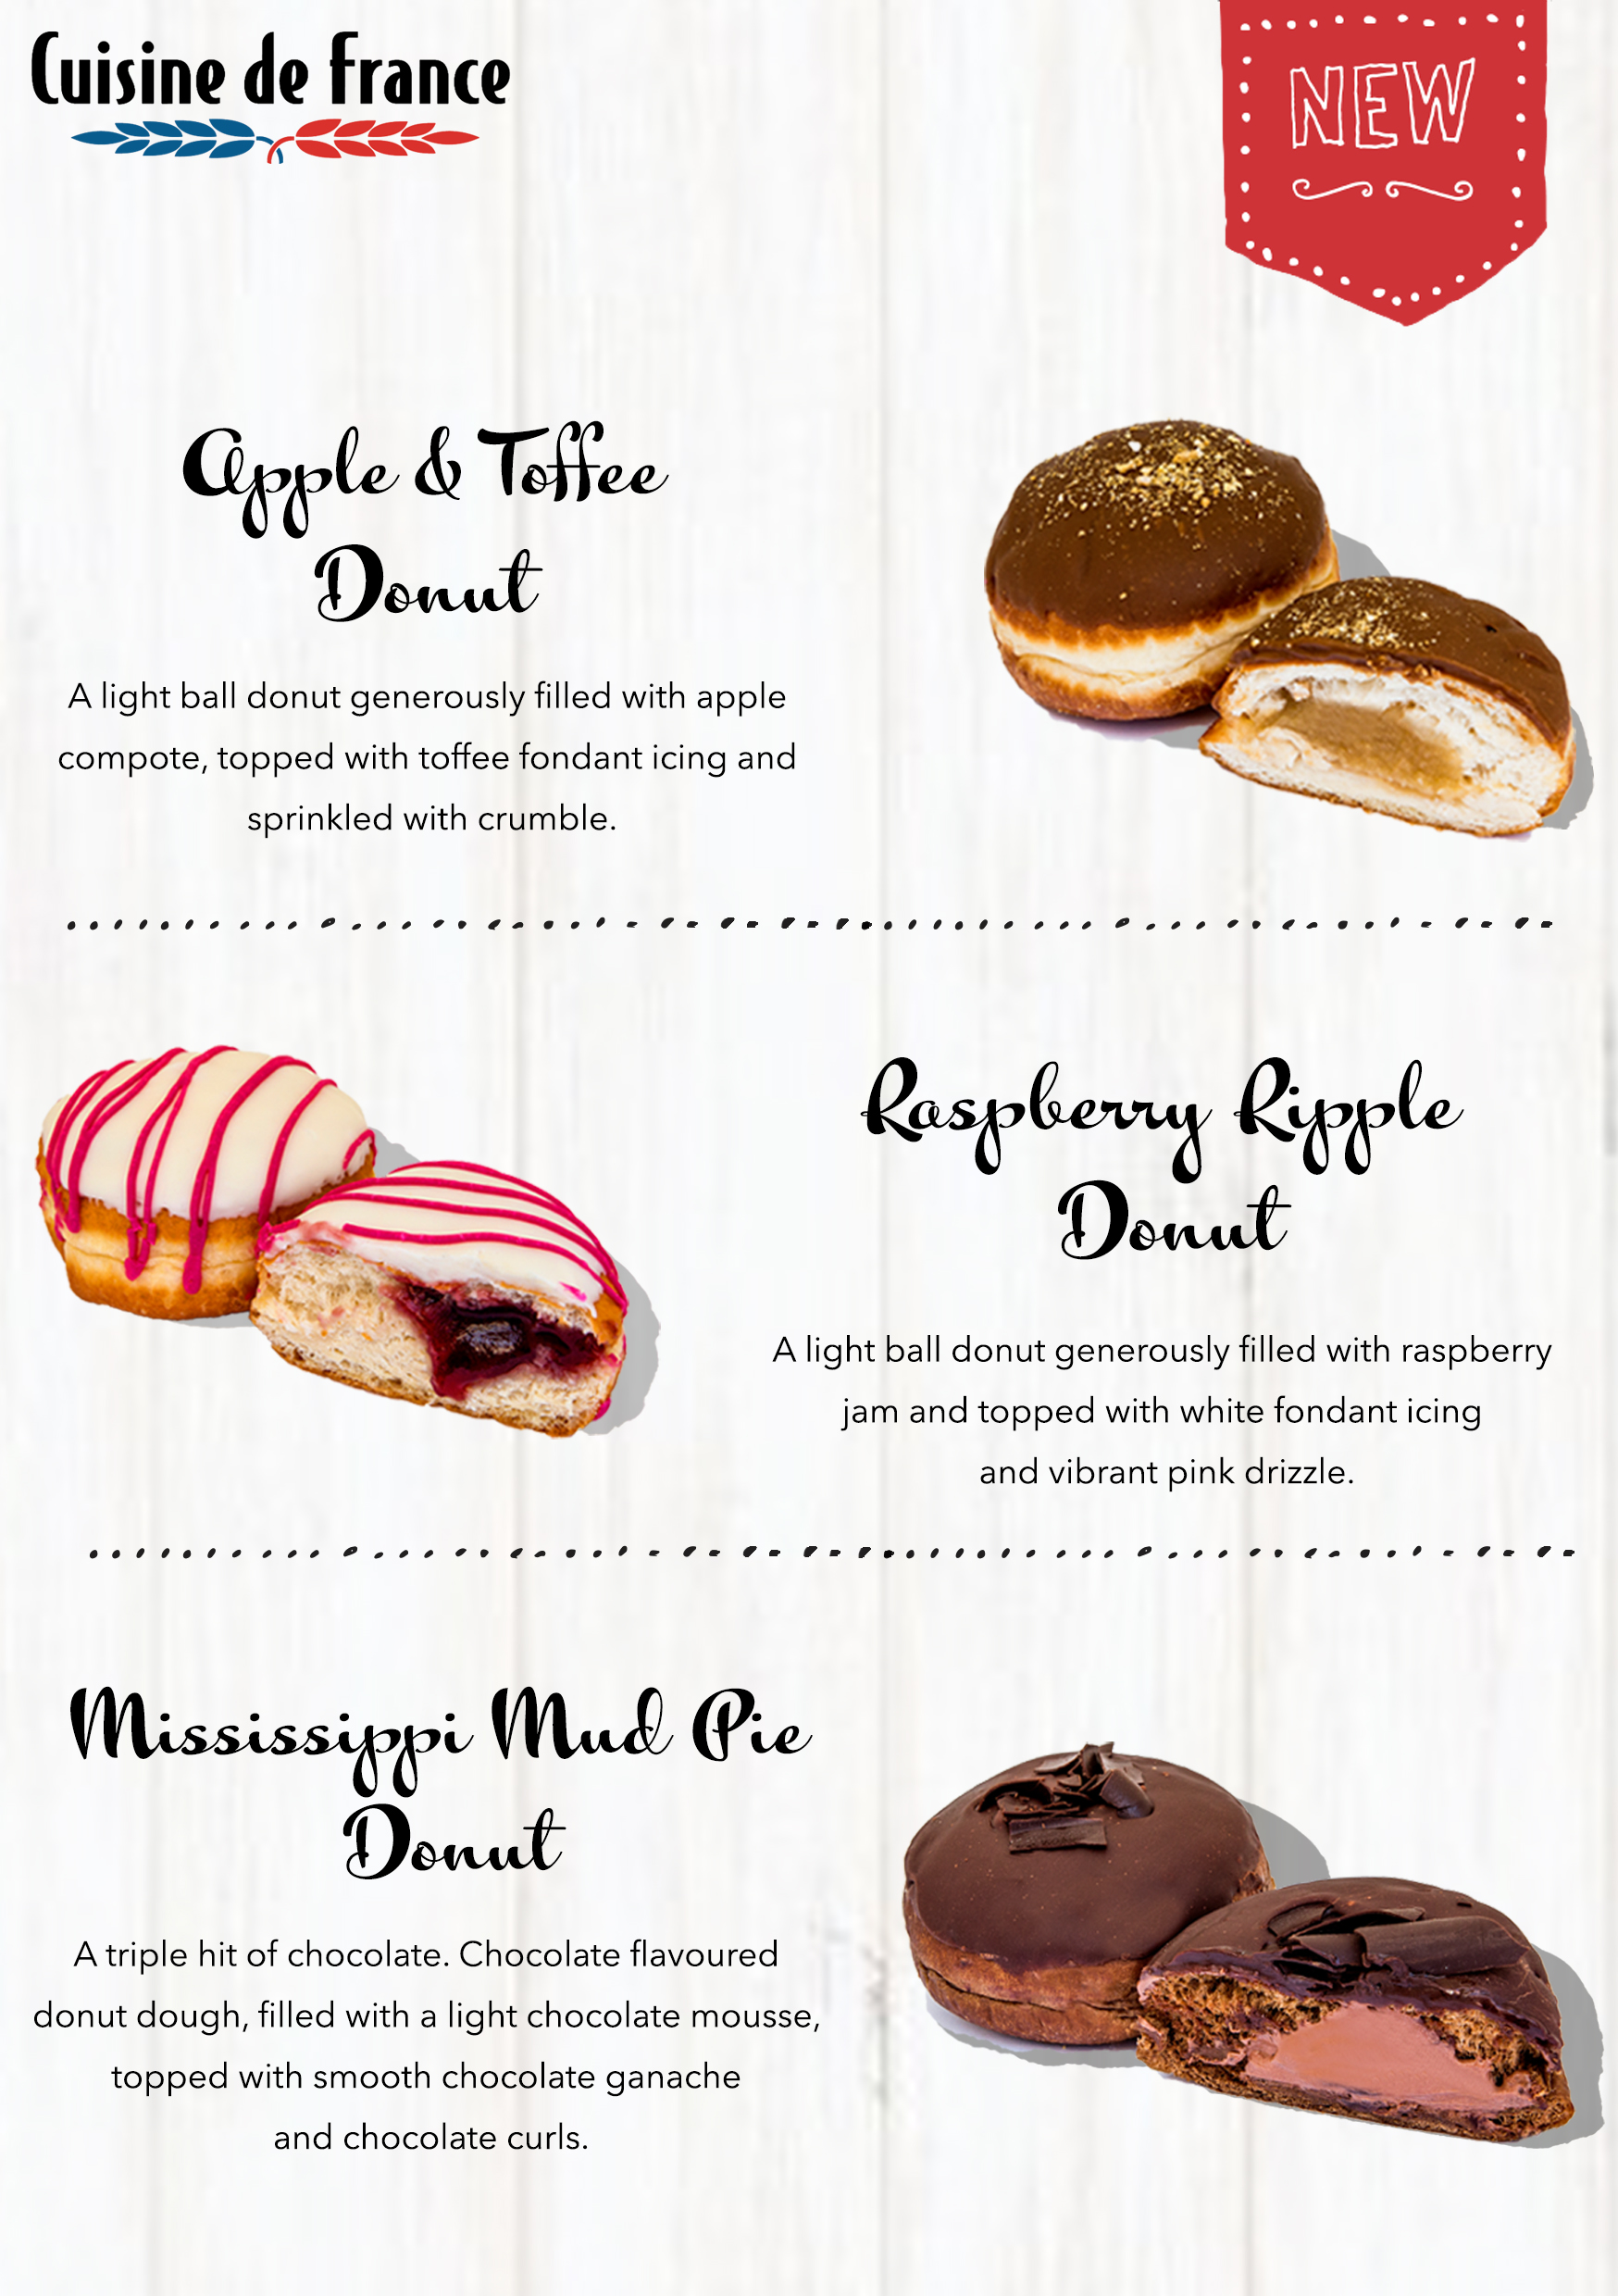 Description of the three new flavour filled donuts